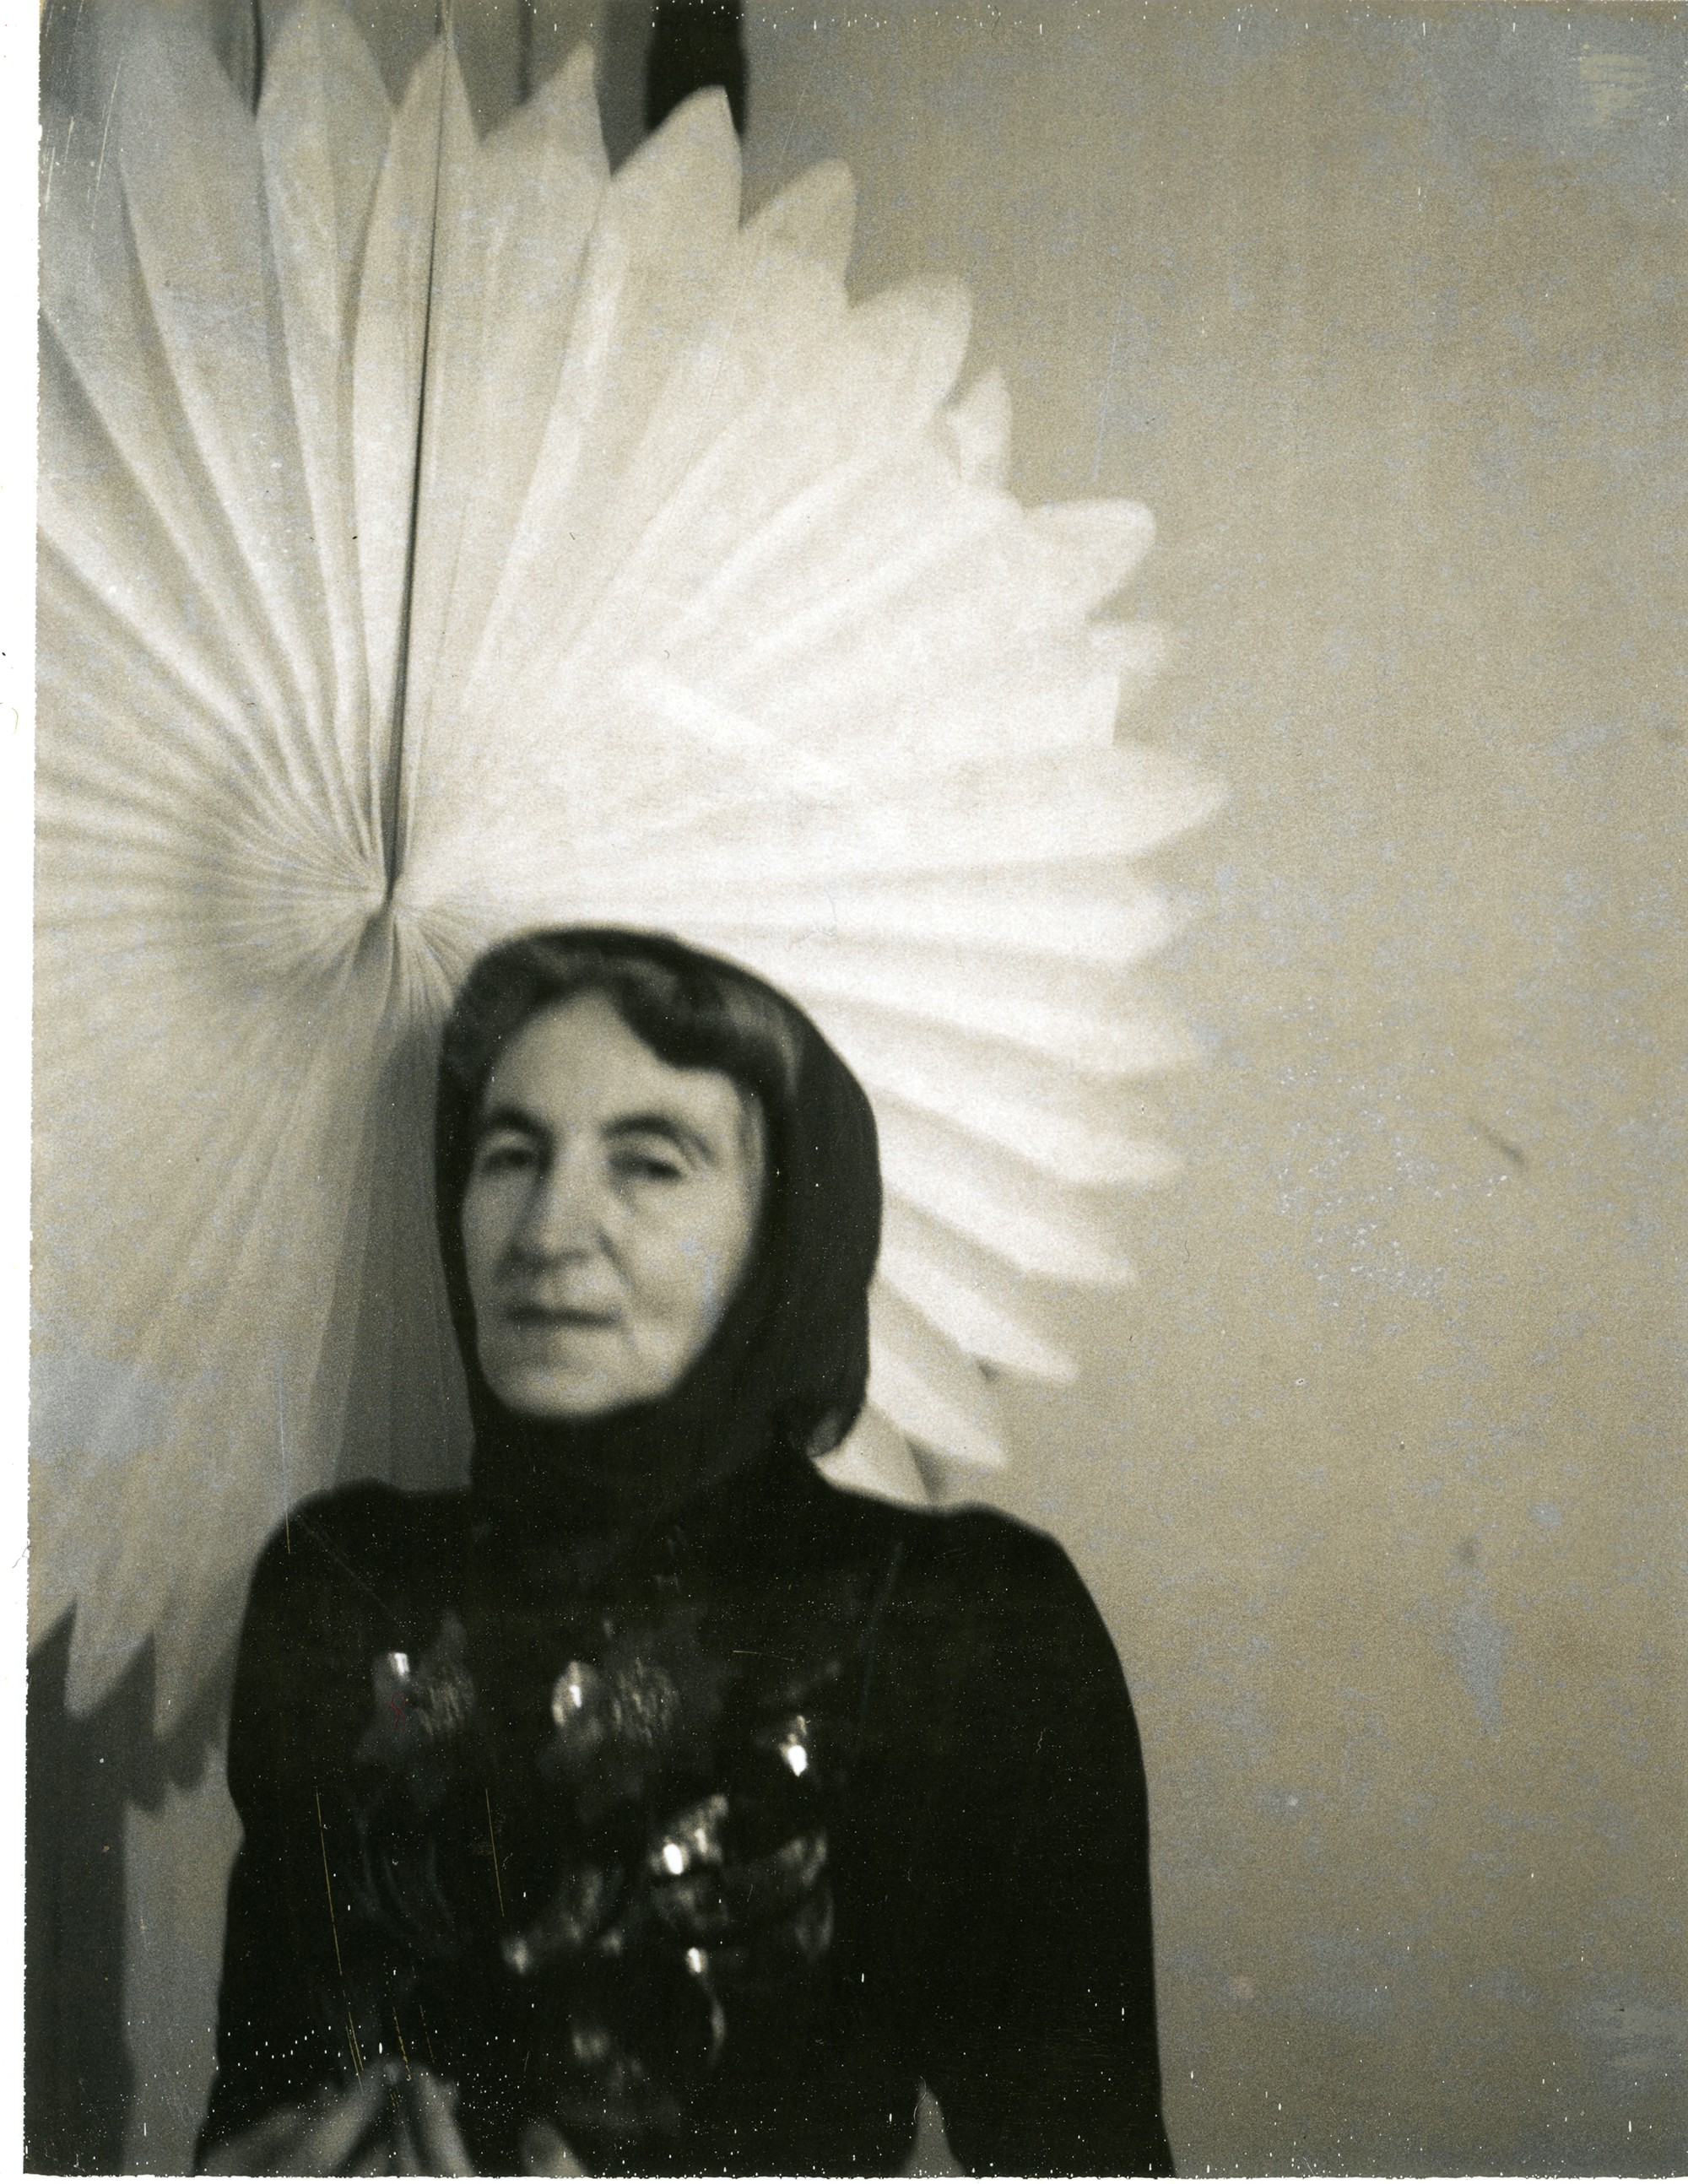 Helen Adam stands in a sparkling top and a head wrap, with a large white fan behind her.